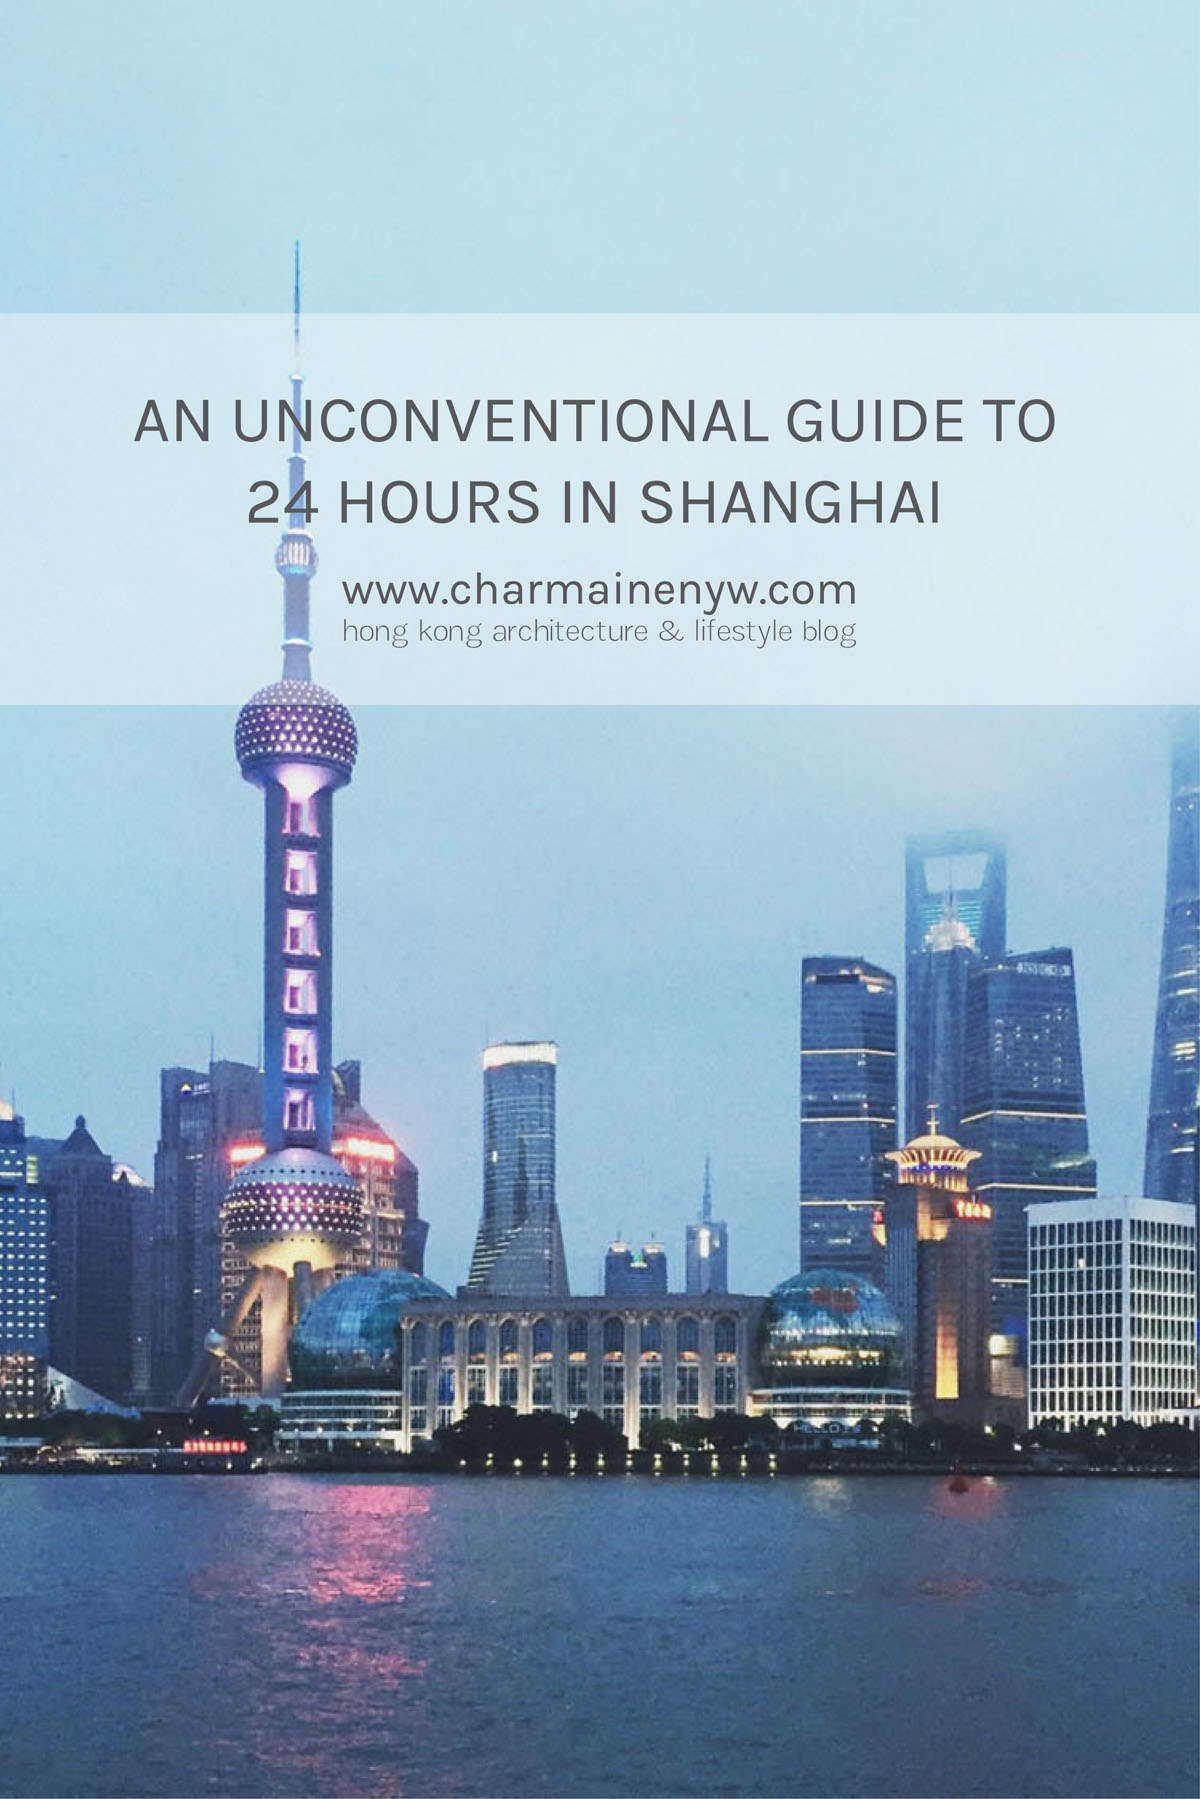 Guide to 24 Hours in Shanghai - The Bund